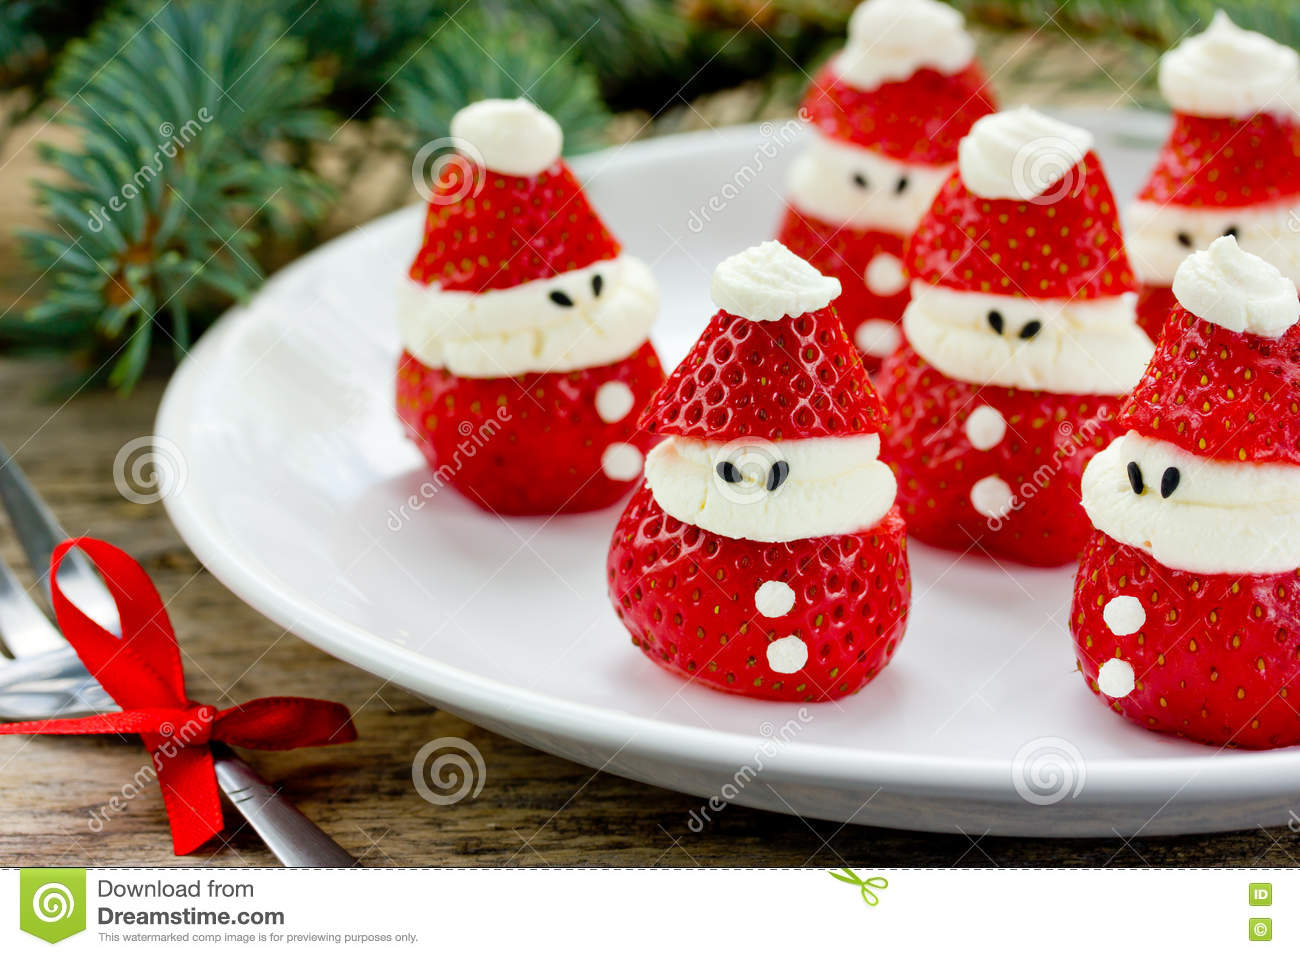 Christmas Party Ideas.Christmas Party Ideas For Kids Strawberry Santa Recipe